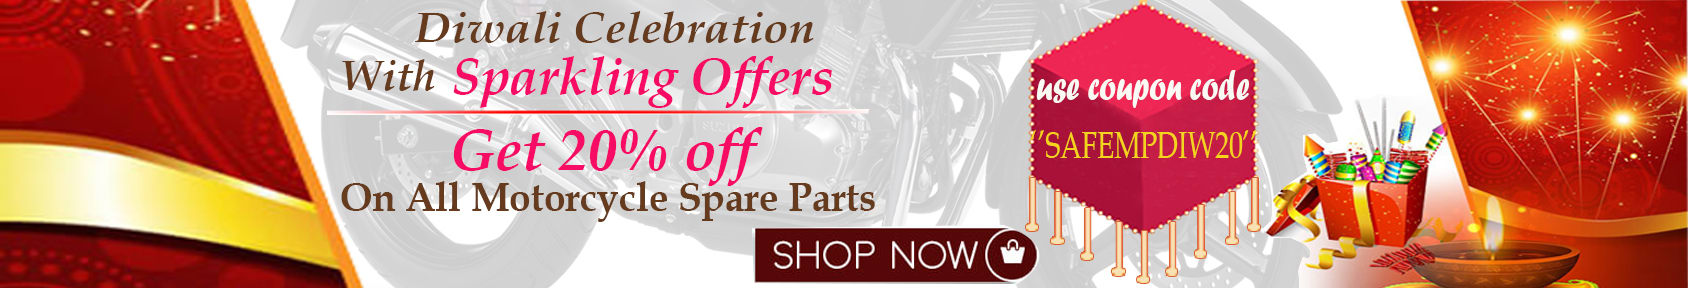 Special offers on Genuine Motorcycle Spare Parts And Accessories - 20% off all spare parts diwali offers